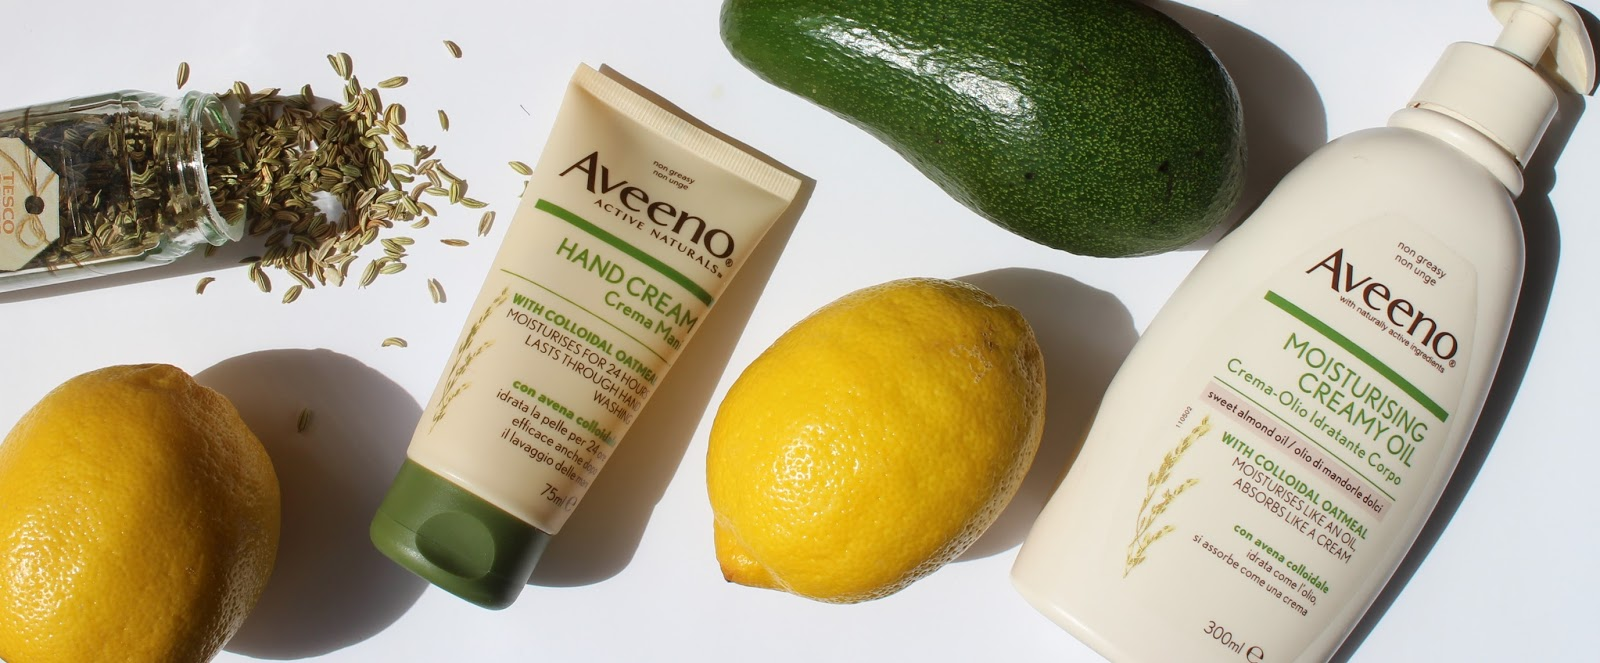 Aveeno-Handcream,Moisturising-Creamy-Oil